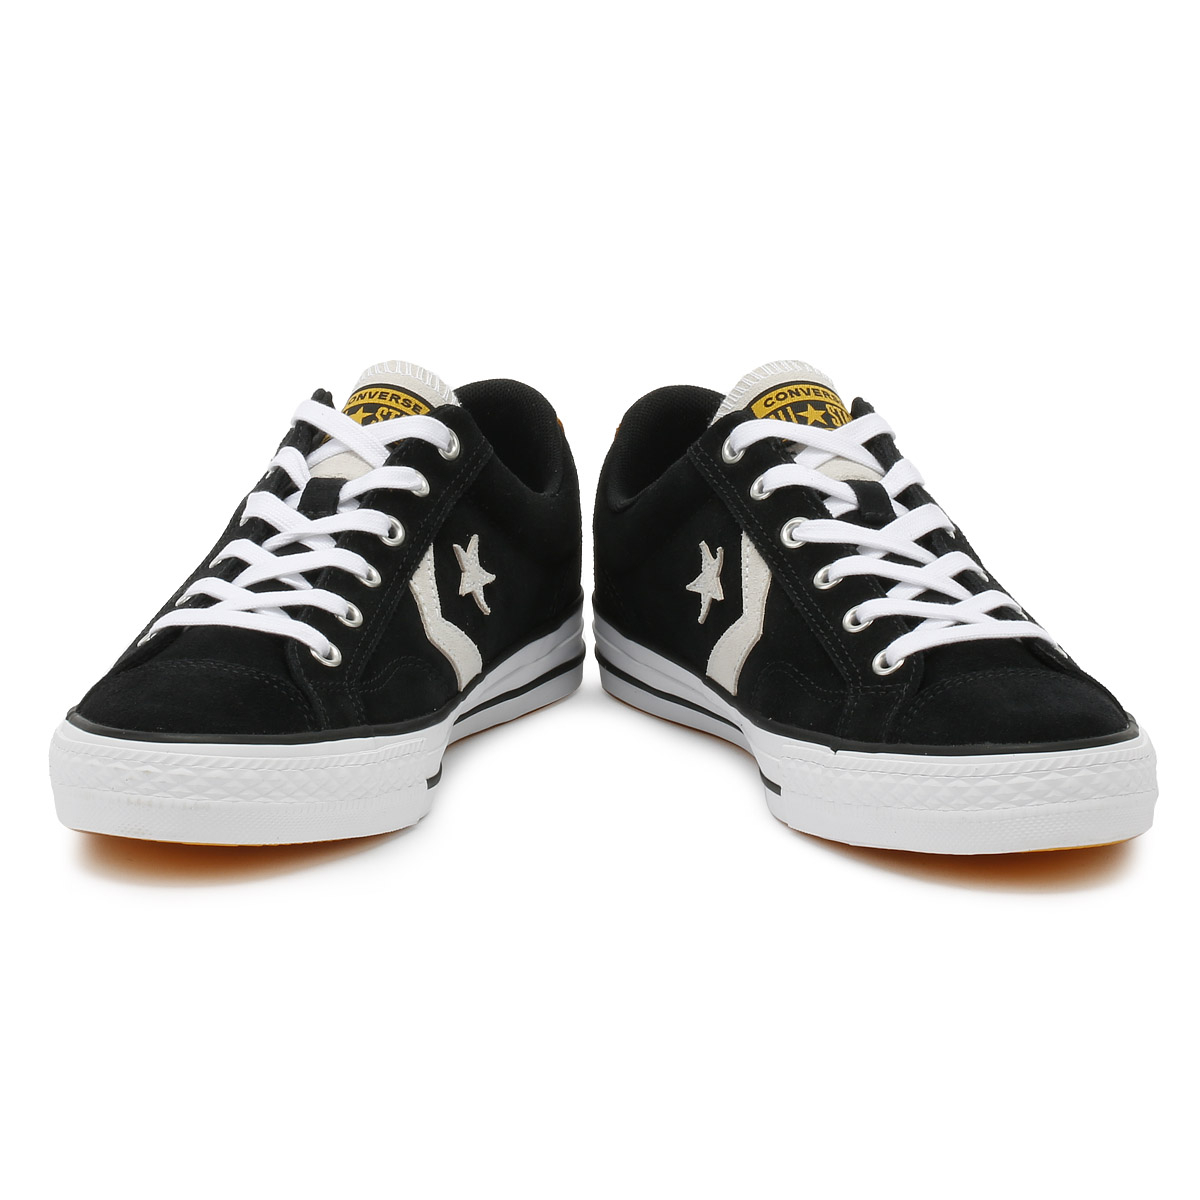 CONVERSE Baskets Homme BLACK & WHITE WHITE & STAR PLAYER suede ox Sport Loisirs Chaussures aa42de